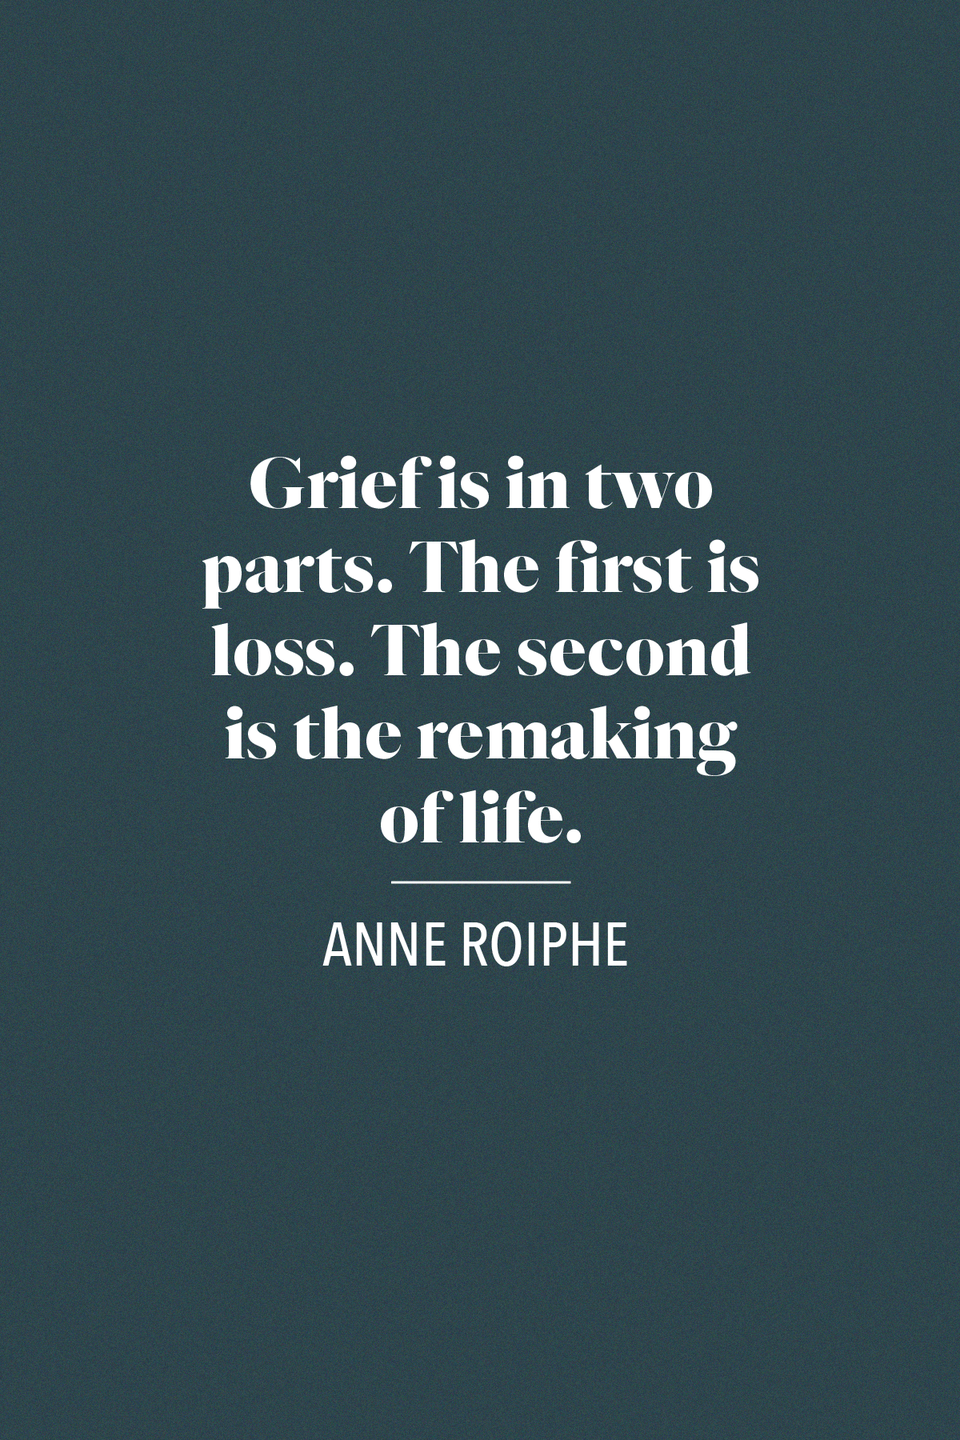 "<p>In her memoir about widowhood, <em><a href=""https://www.amazon.com/Epilogue-Memoir-Anne-Roiphe/dp/0061254622/ref=tmm_hrd_swatch_0?_encoding=UTF8&tag=syn-yahoo-20&ascsubtag=%5Bartid%7C10072.g.32909234%5Bsrc%7Cyahoo-us"" rel=""nofollow noopener"" target=""_blank"" data-ylk=""slk:Epilogue"" class=""link rapid-noclick-resp"">Epilogue</a>, </em>journalist Anne Roiphe wrote, ""Grief is in two parts. The first is loss. The second is the remaking of life,"" </p>"